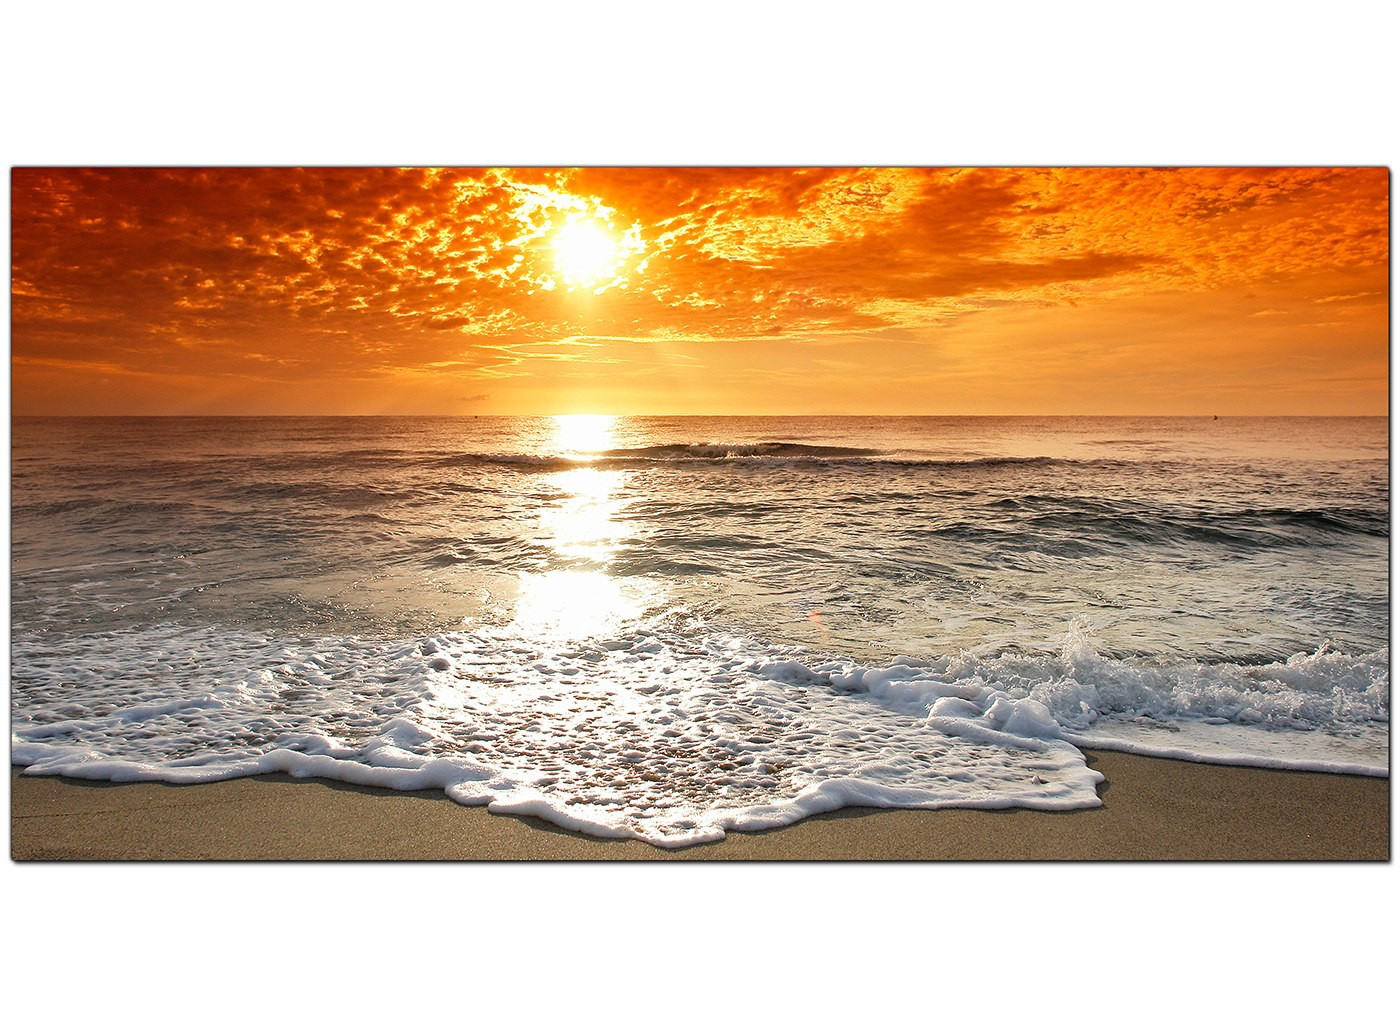 Cheap Canvas Pictures Of A Beach Sunset For Your Bedroom